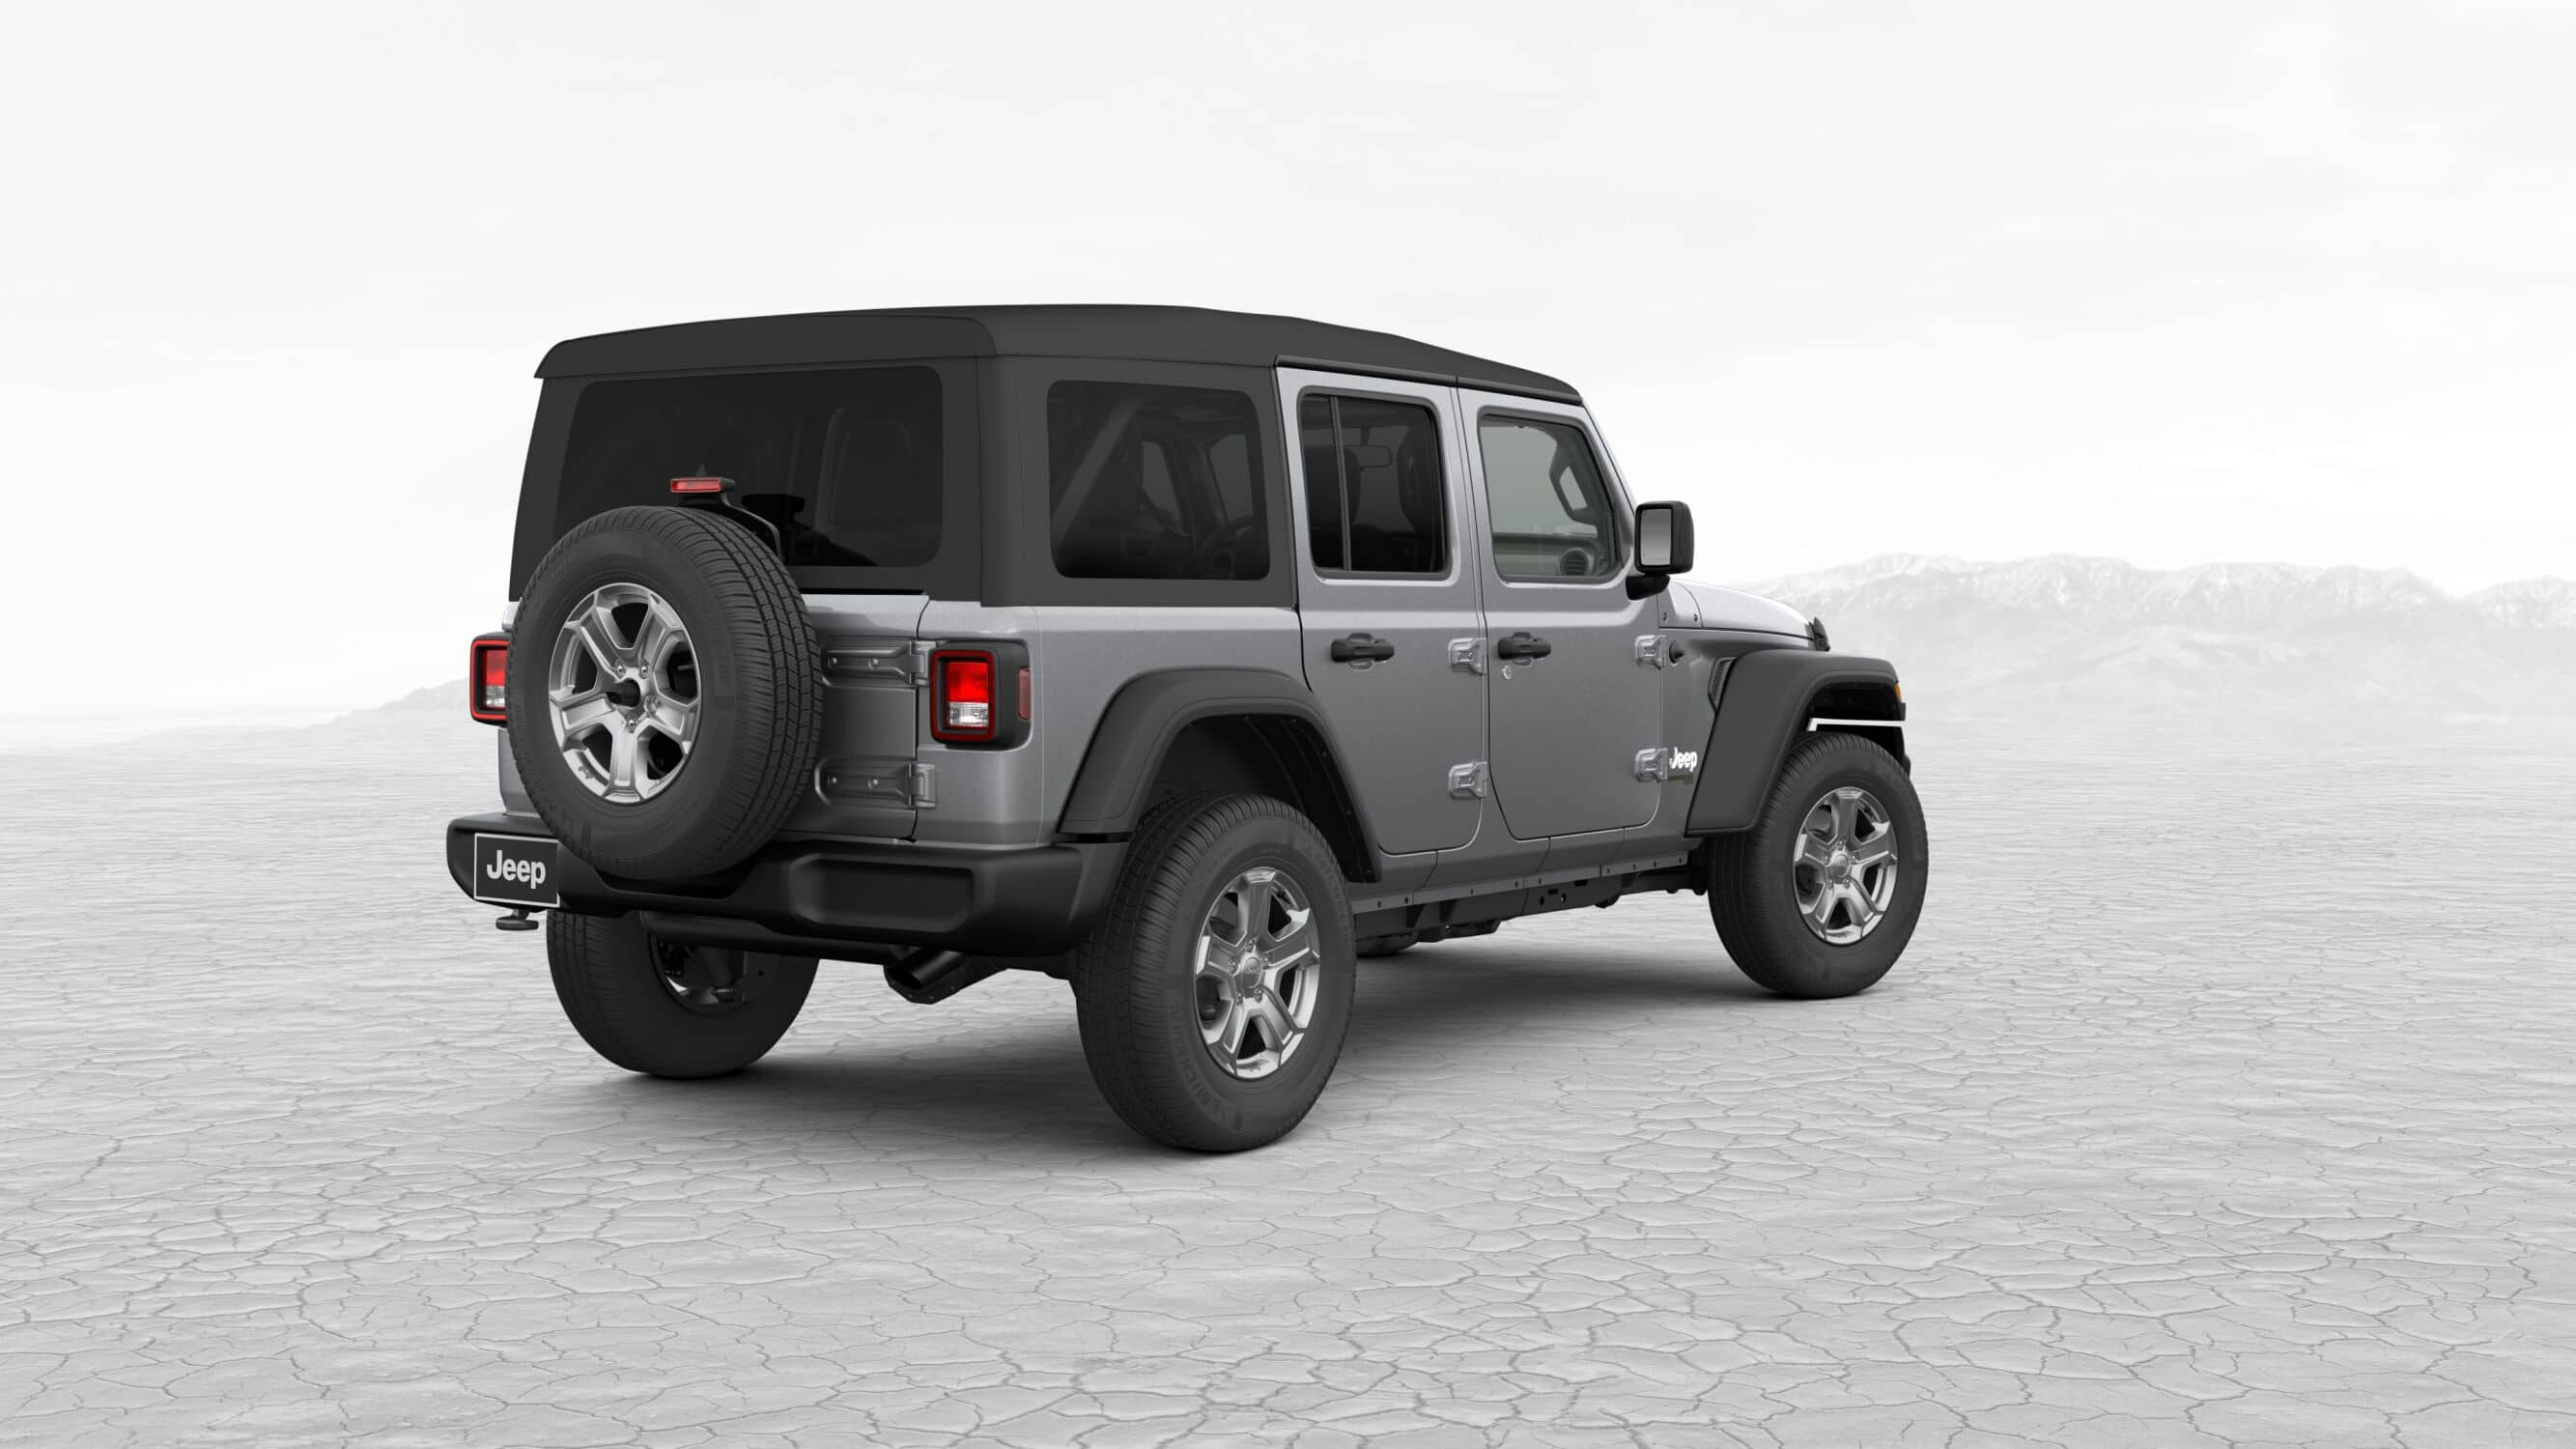 2019 Jeep Wrangler Unlimited Sport S Silver Exterior Rear Picture